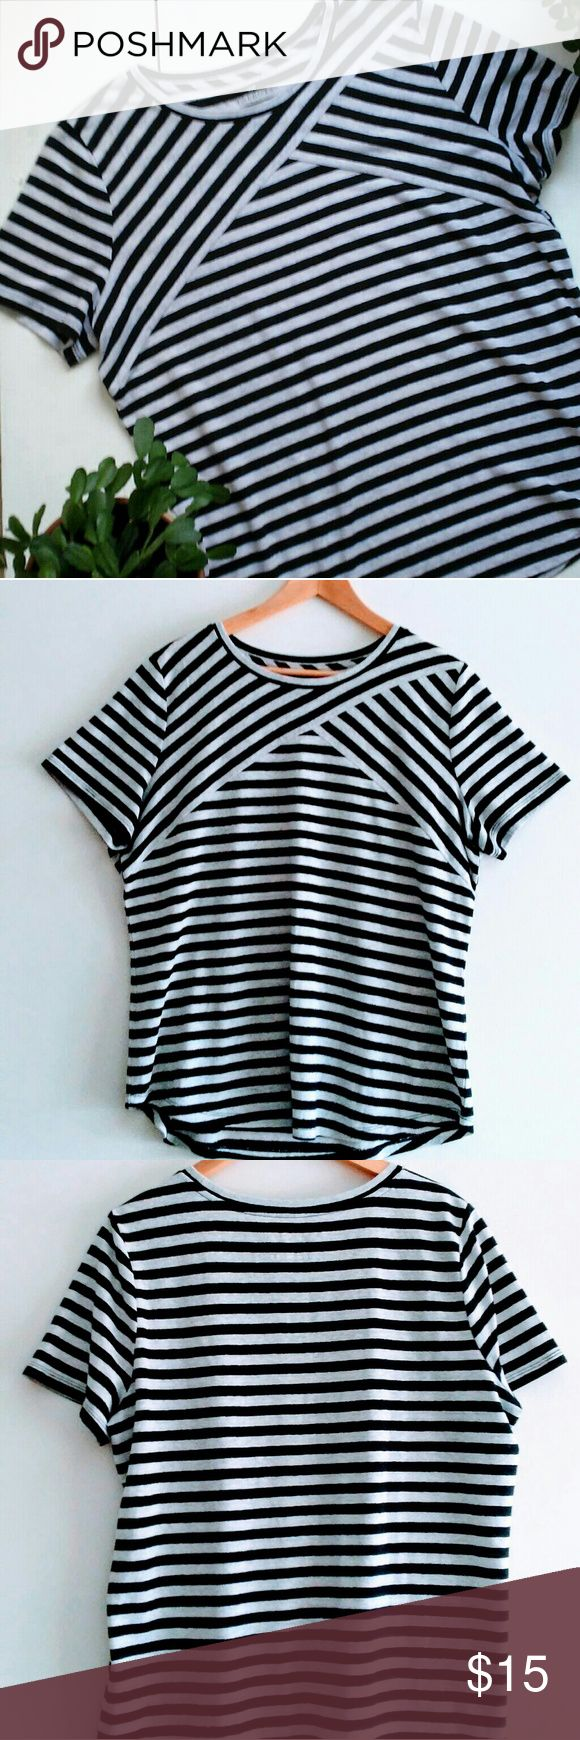 Talbots Woman linen gray & black striped tee Lovely lightweight tee with fun bias striped yoke design. Perfect for summer! Soft and relaxed fit that falls to the hip. Heather gray and black 55% linen/45% polyester fabric. Talbots Tops Tees - Short Sleeve